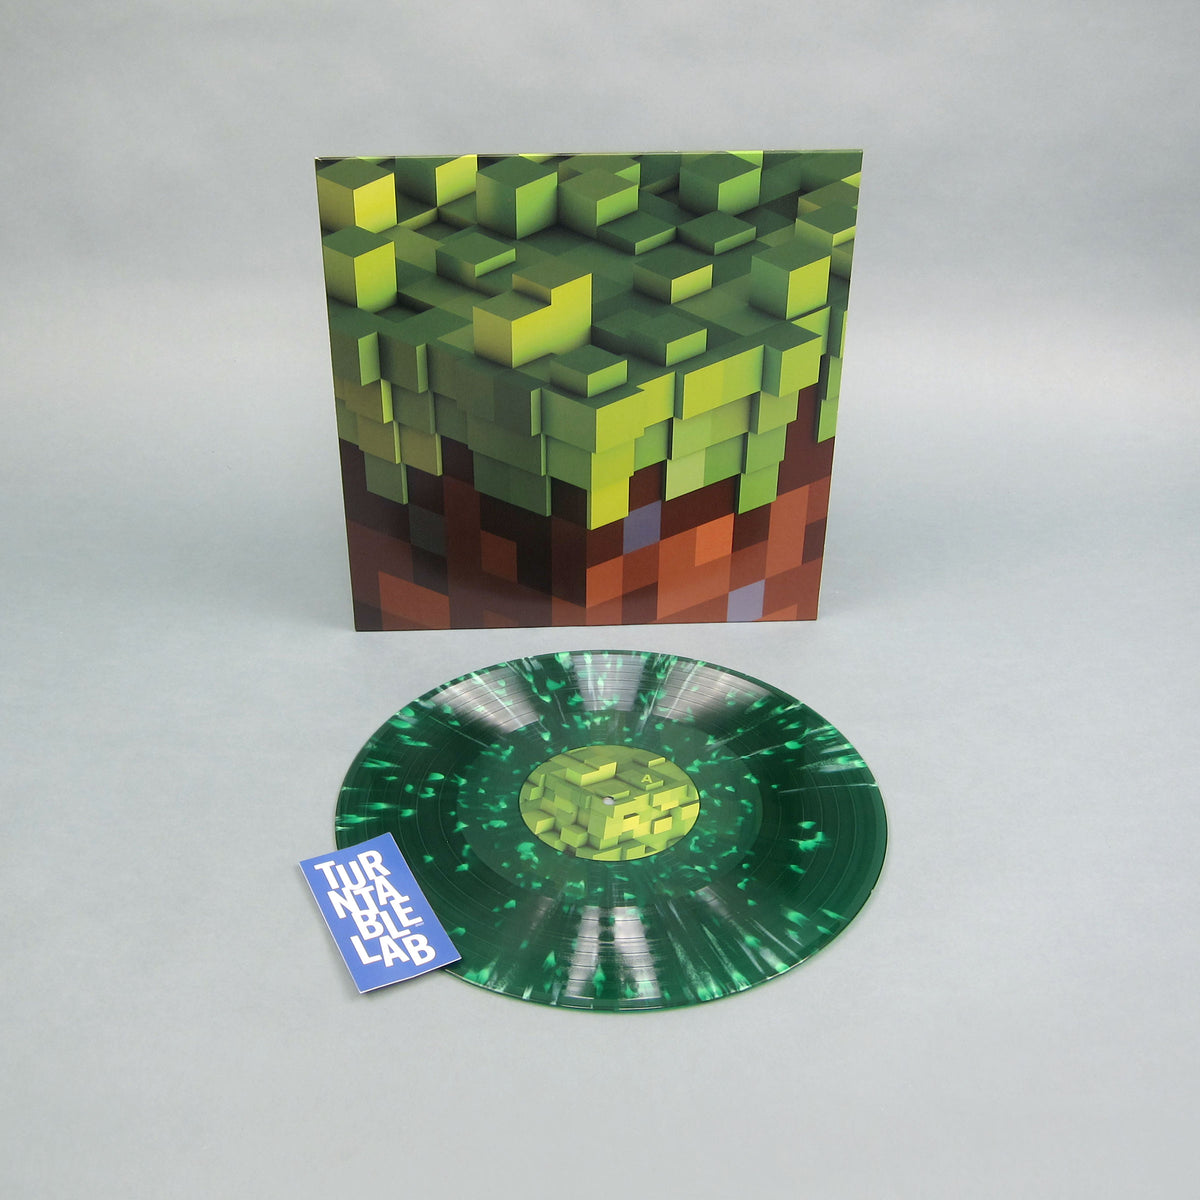 C418: Minecraft Volume Alpha (Colored Vinyl) Vinyl LP - Turntable Lab Exclusive - PRE-ORDER - LIMIT 1 PER CUSTOMER